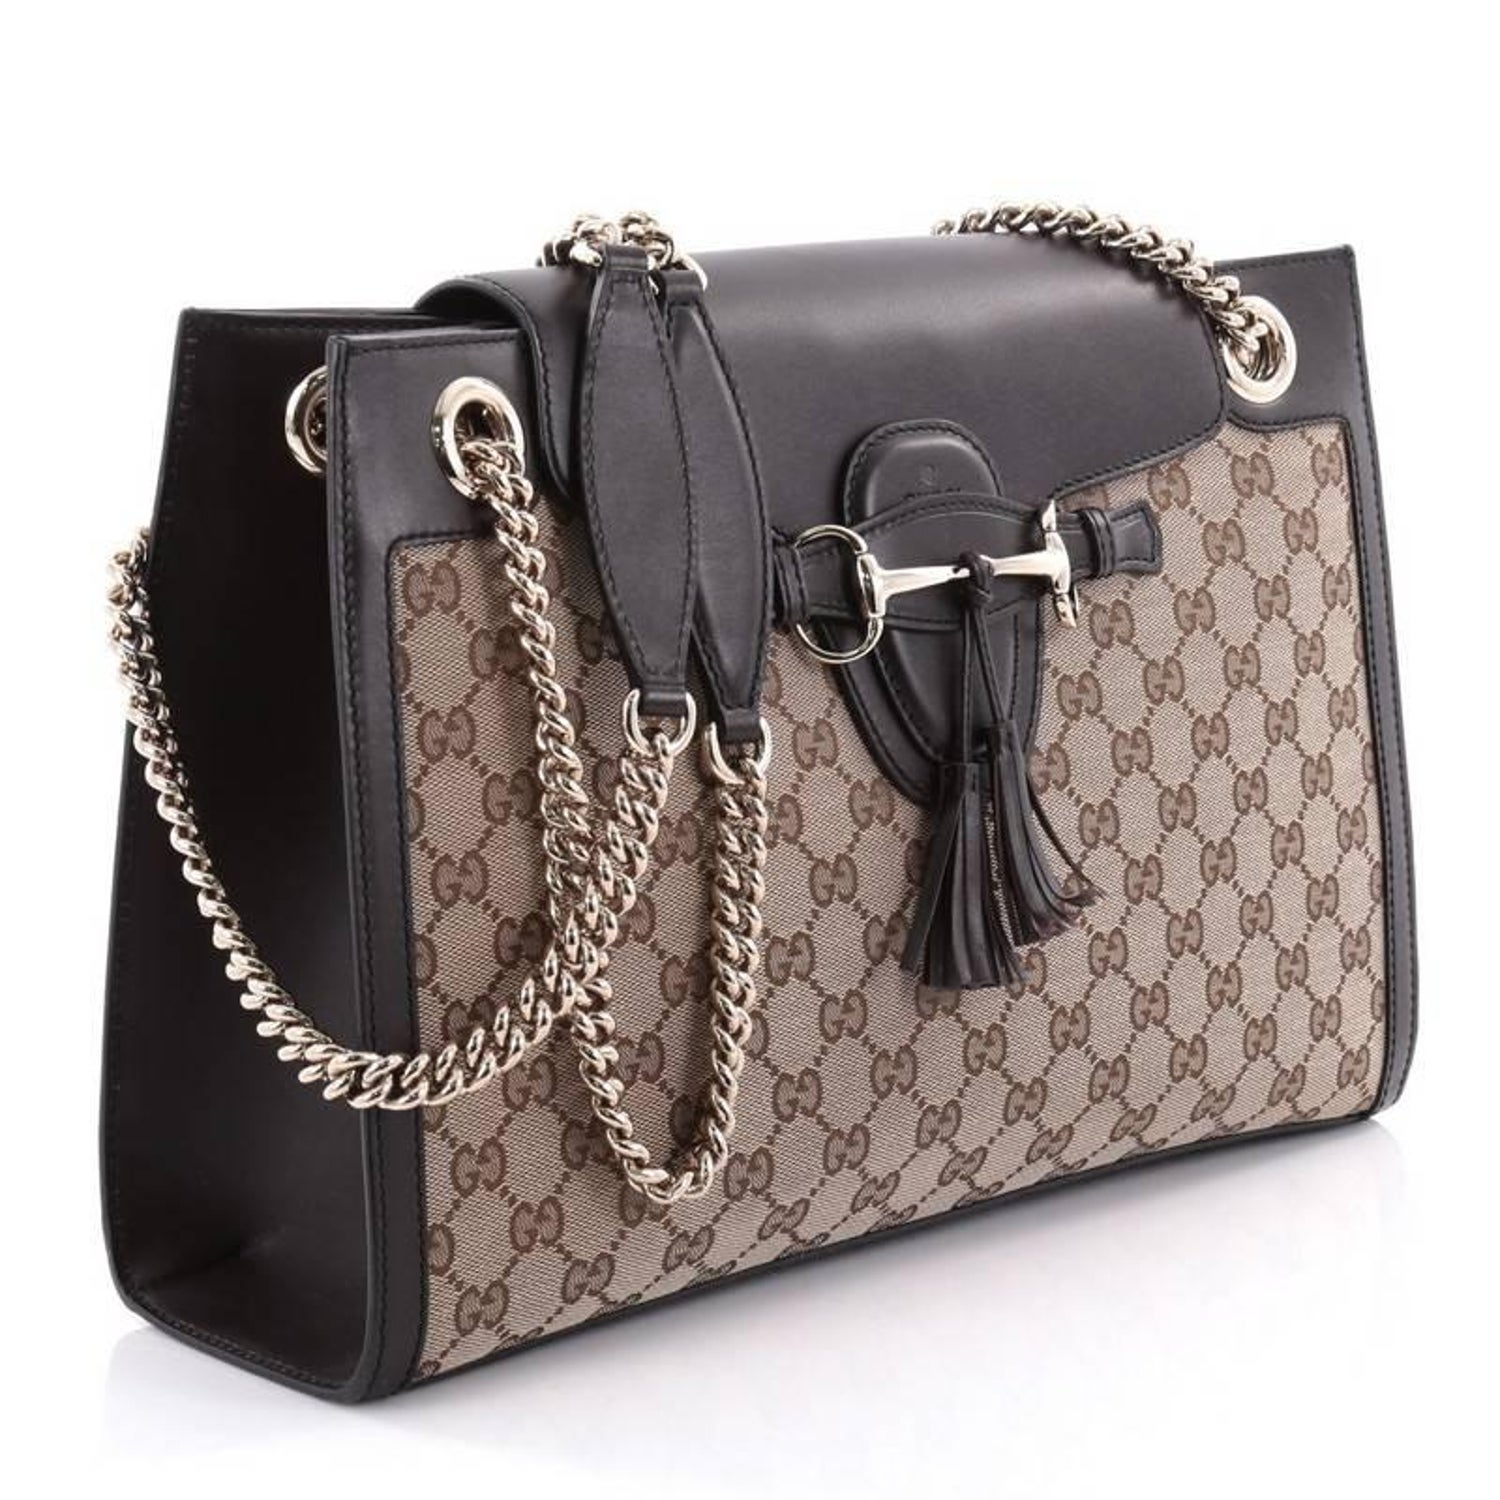 7a357b6c9 Gucci Emily Chain Flap Shoulder Bag GG Canvas Large at 1stdibs